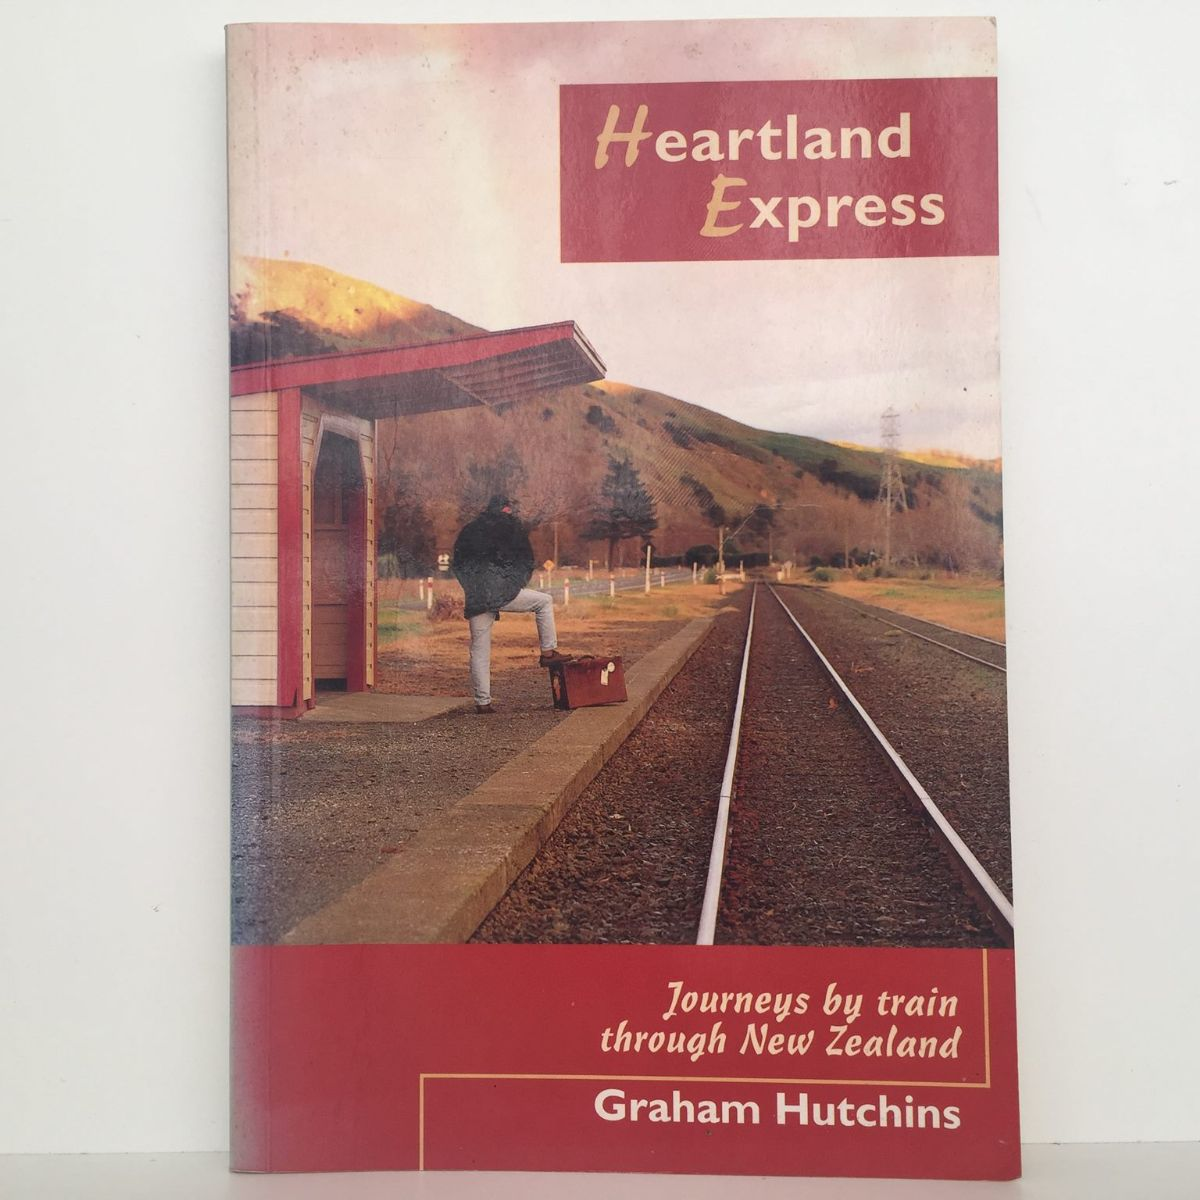 Heartland Express : Journeys by train through New Zealand